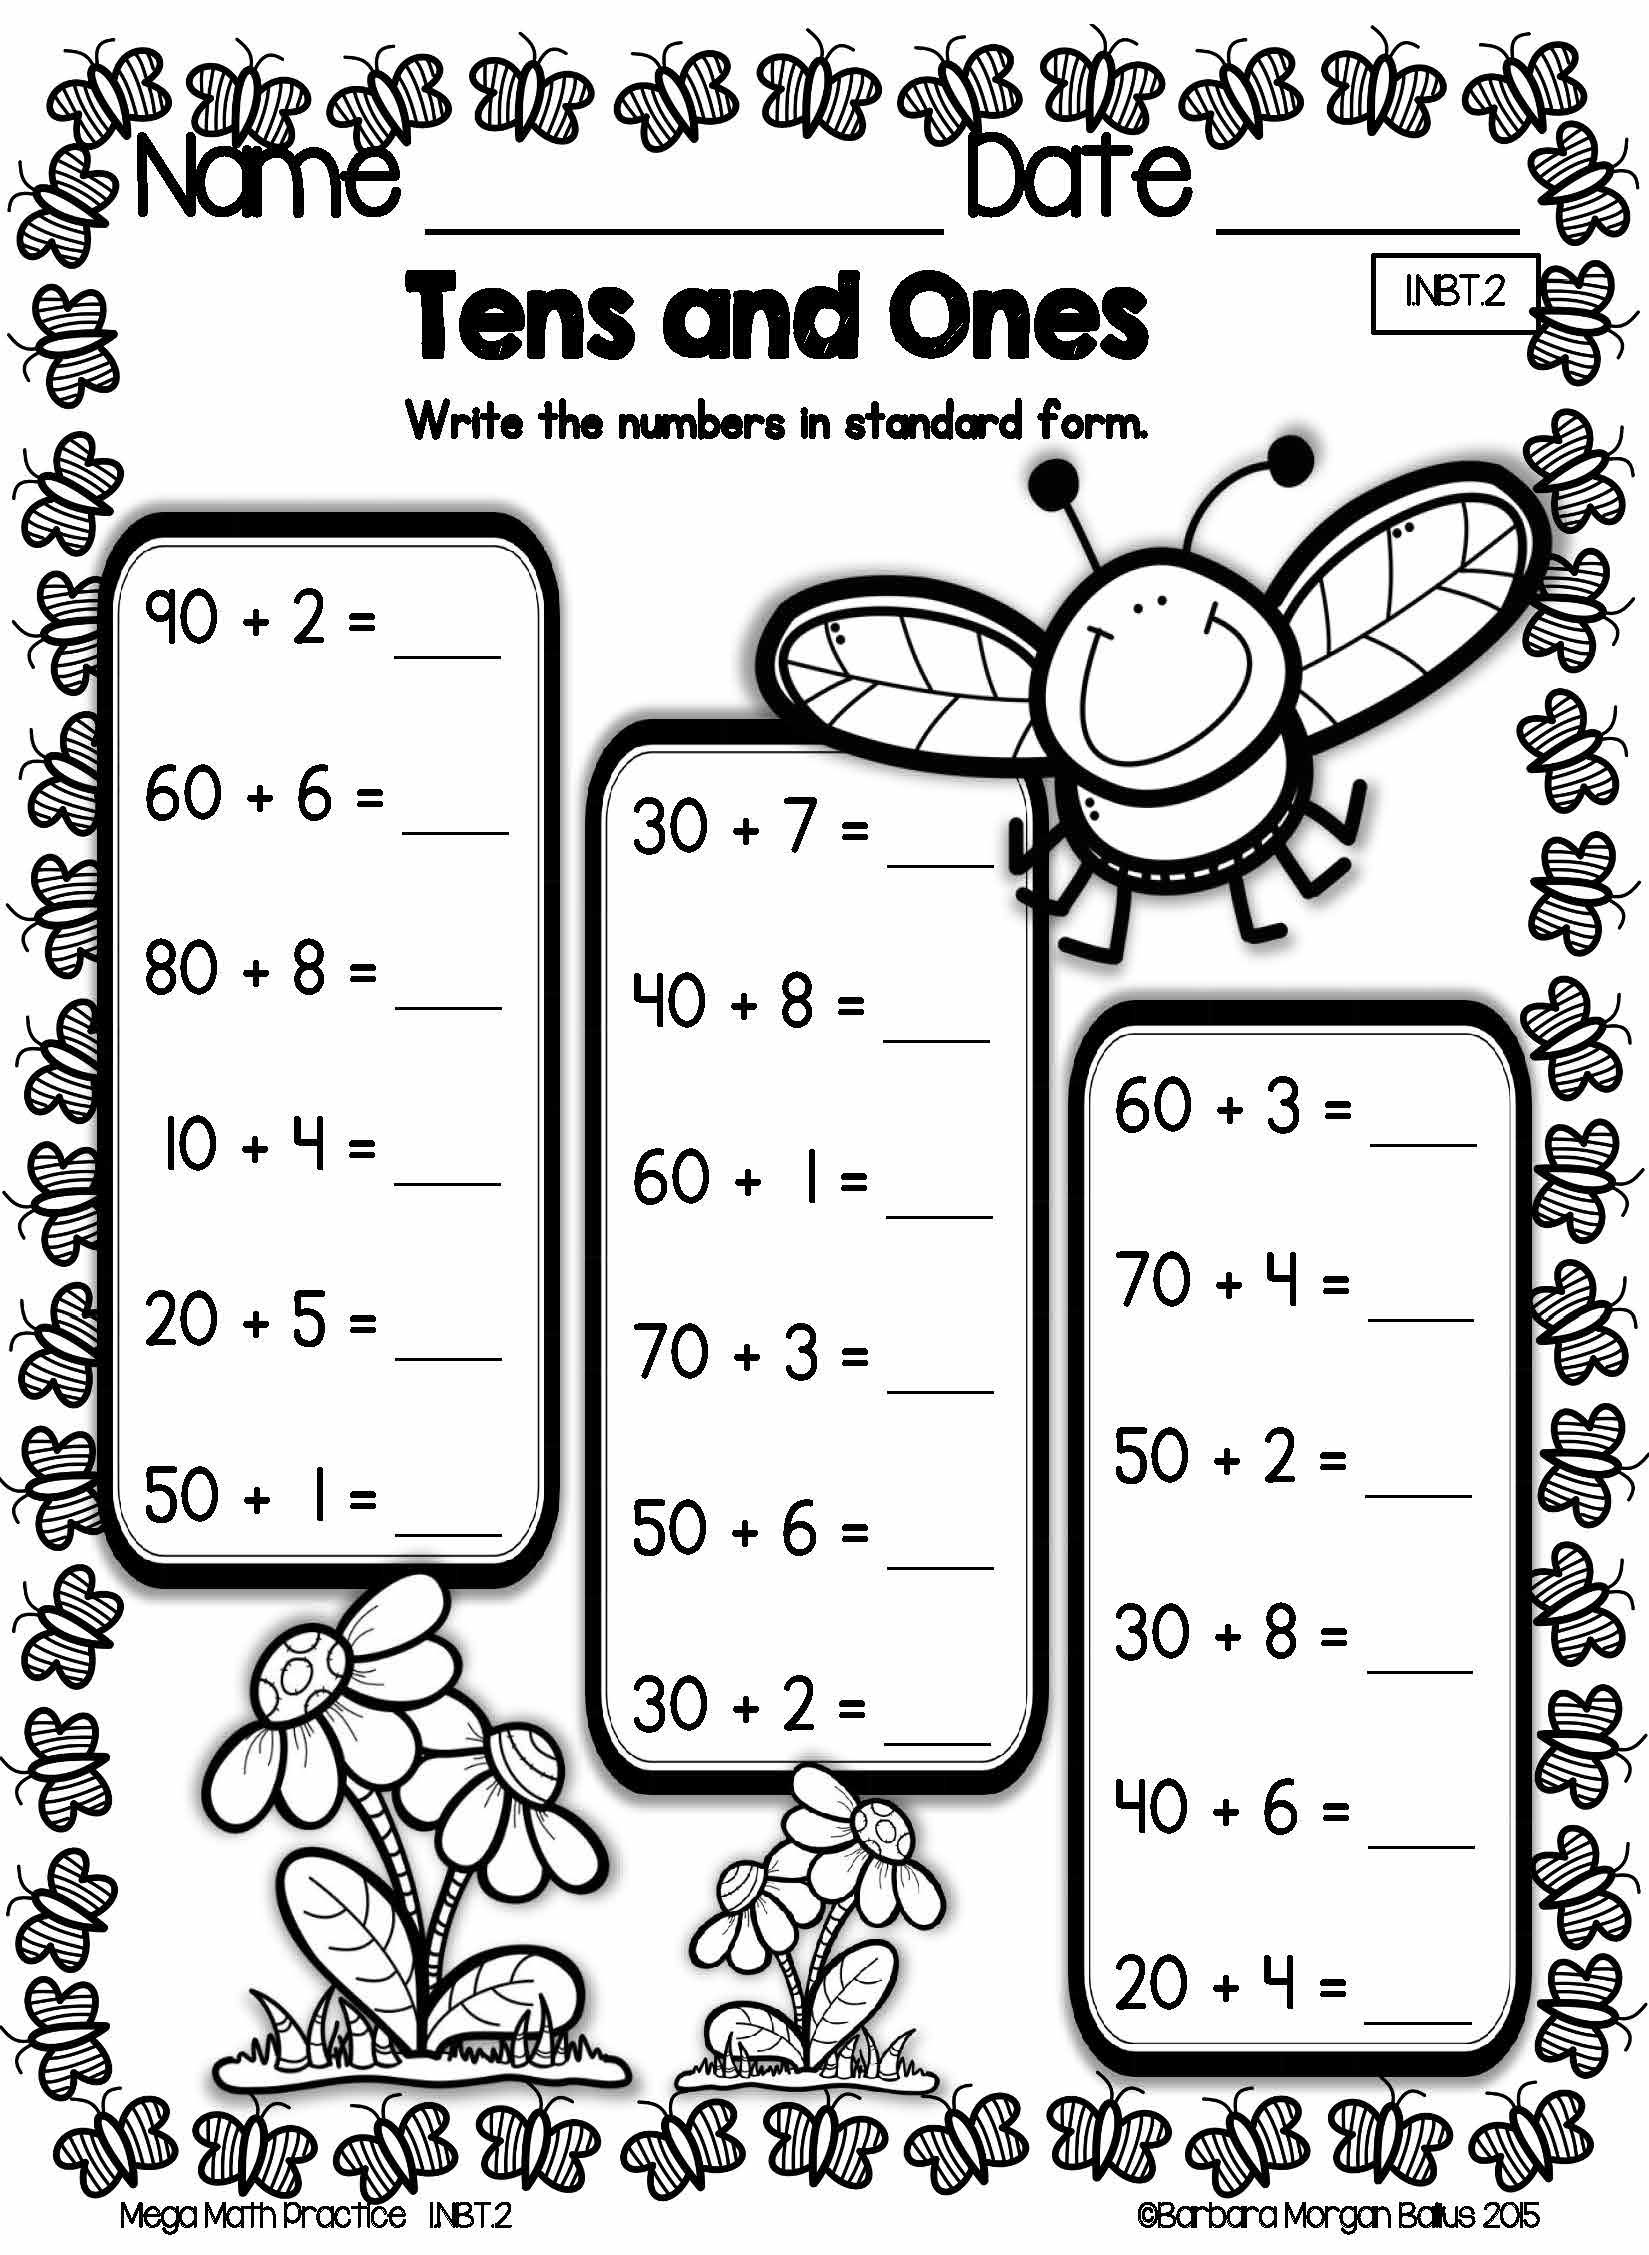 Understanding Place Value Mega Math Practice Spring 1 Nbt